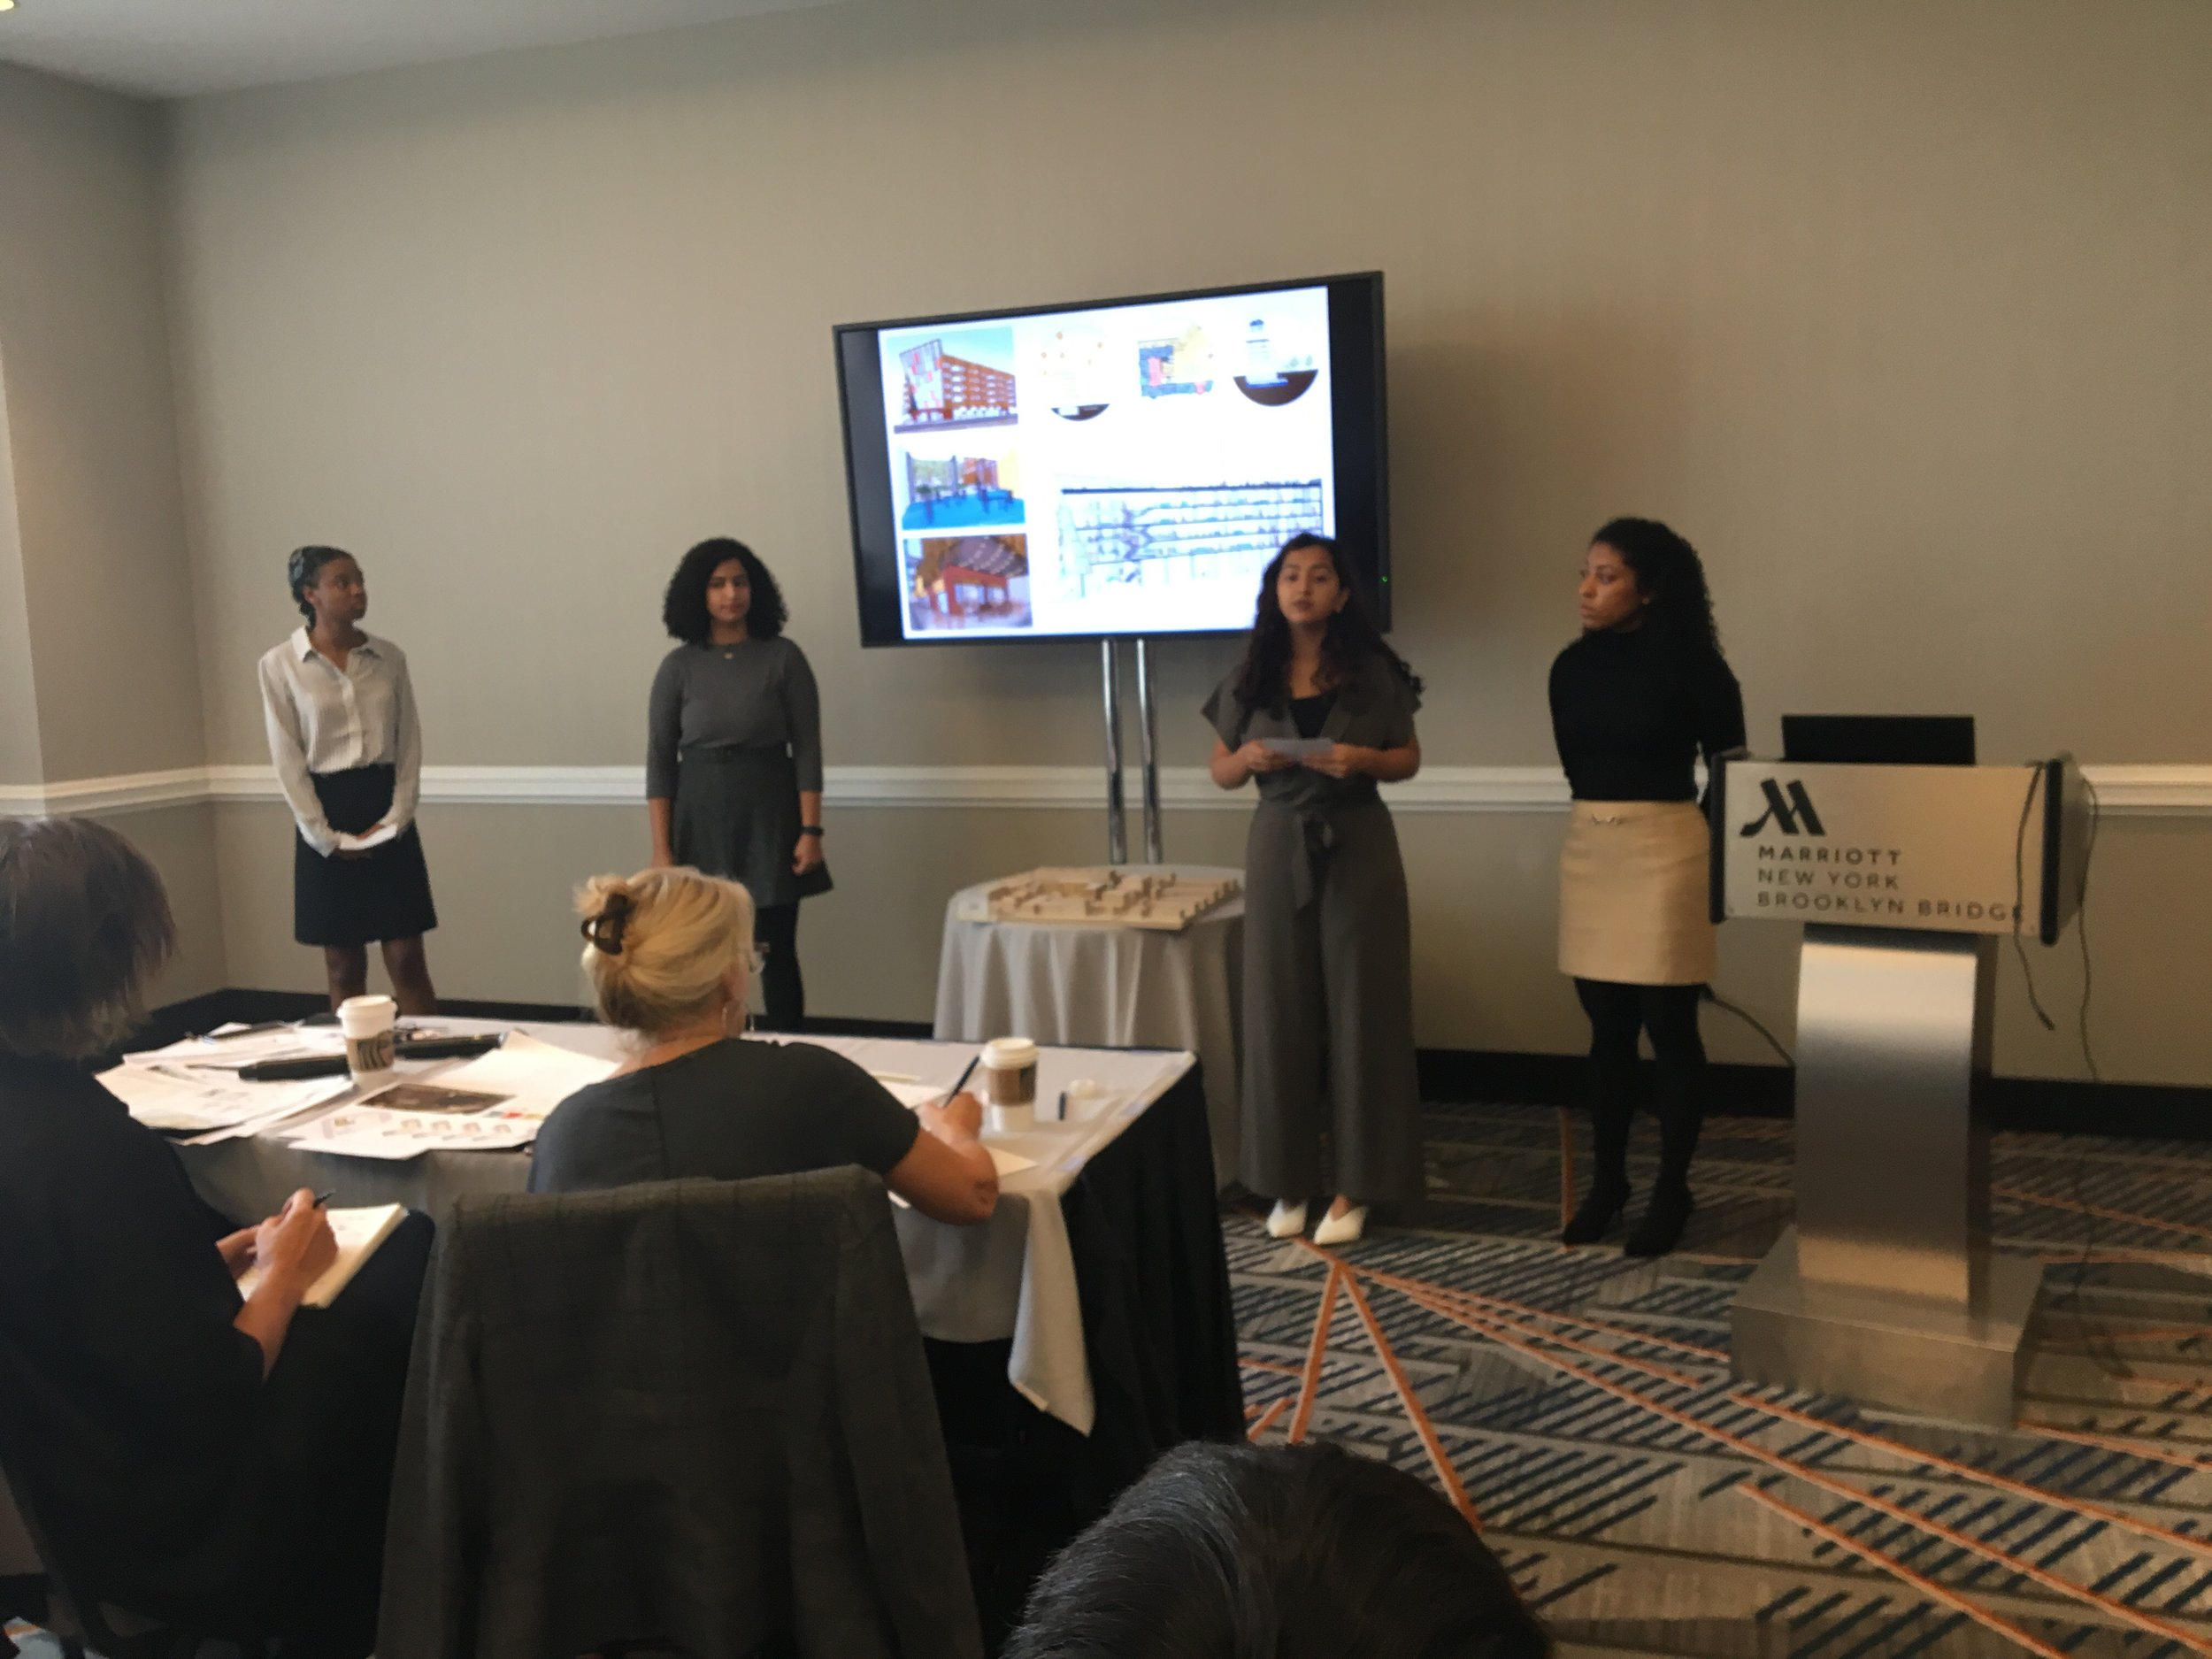 Carnegie Mellon School of Architecture NOMAS students present their work in the 2019 Barbara G. Laurie Student Design Competition.